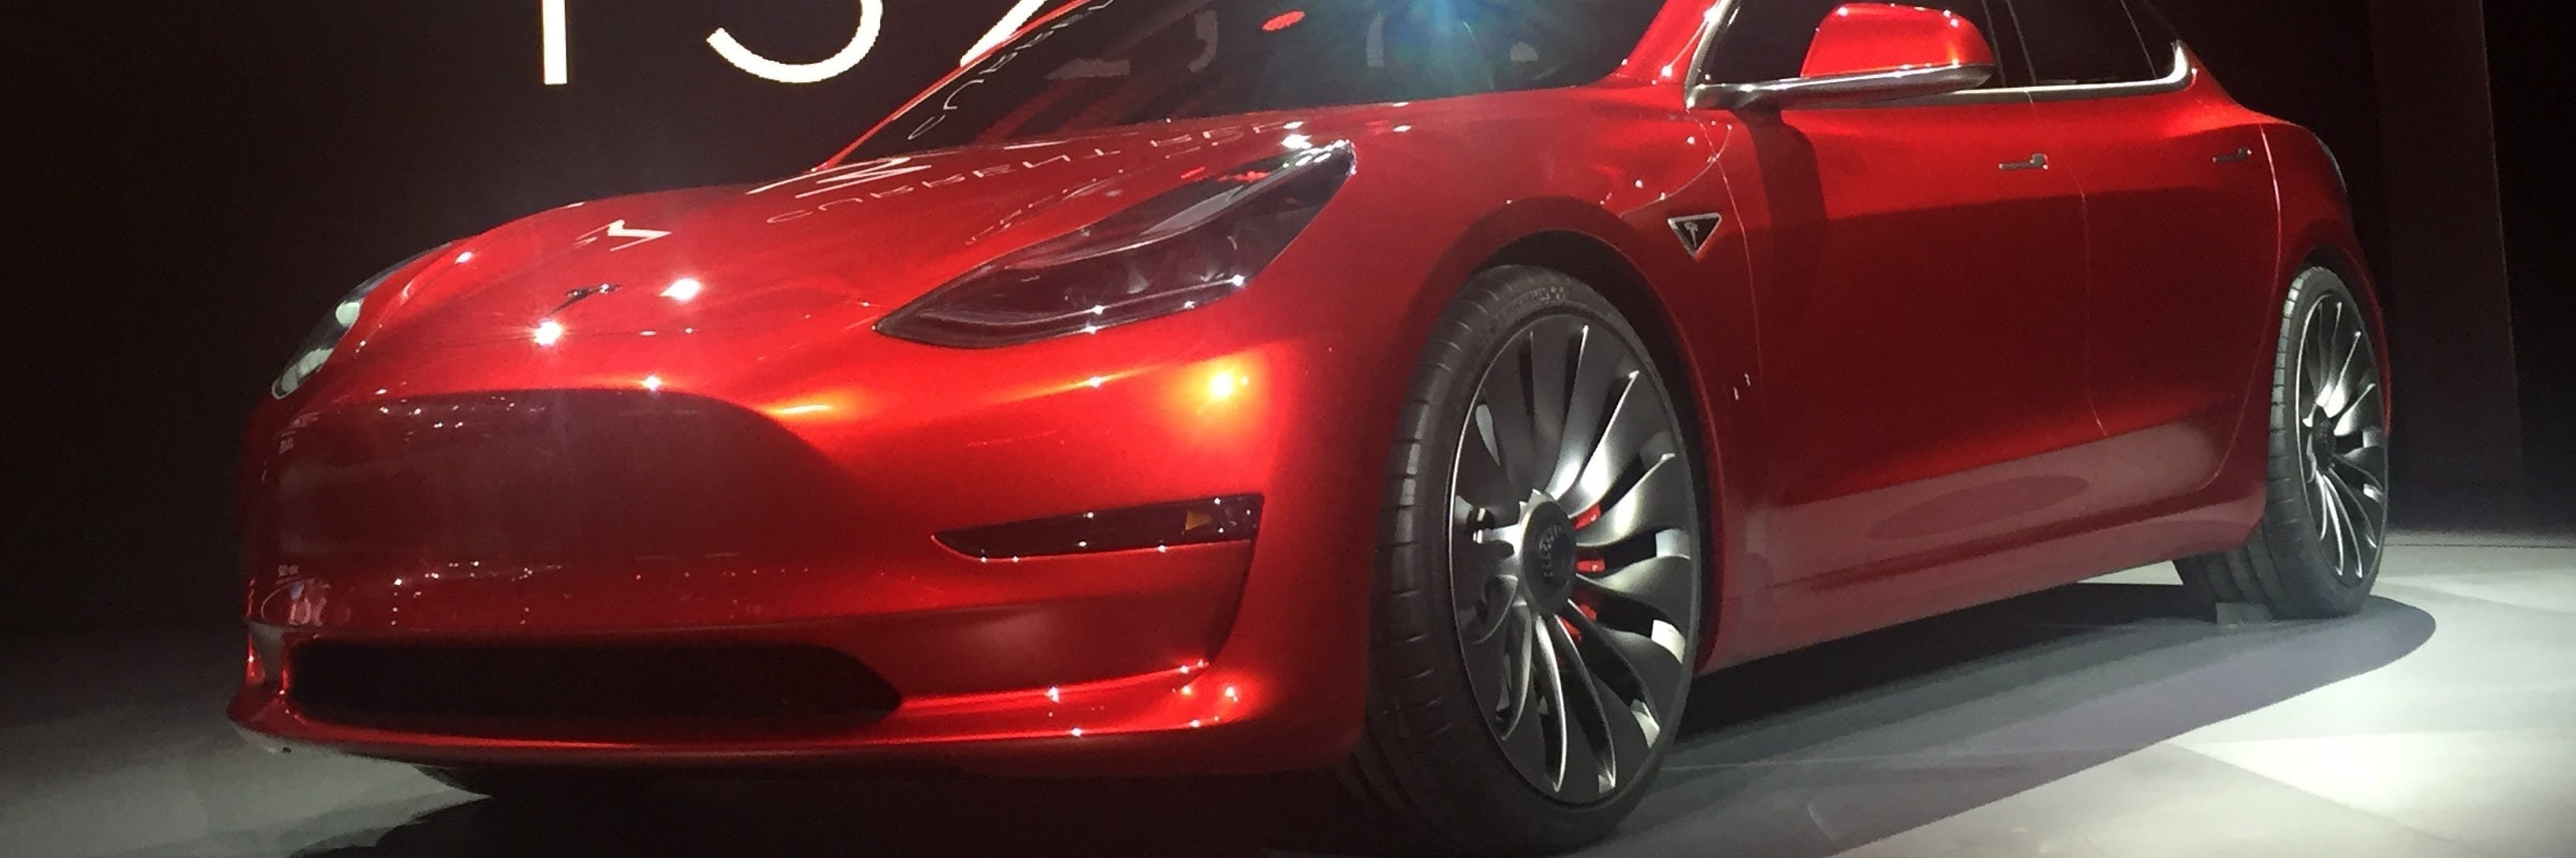 Candy Red Model 3 with the new nose